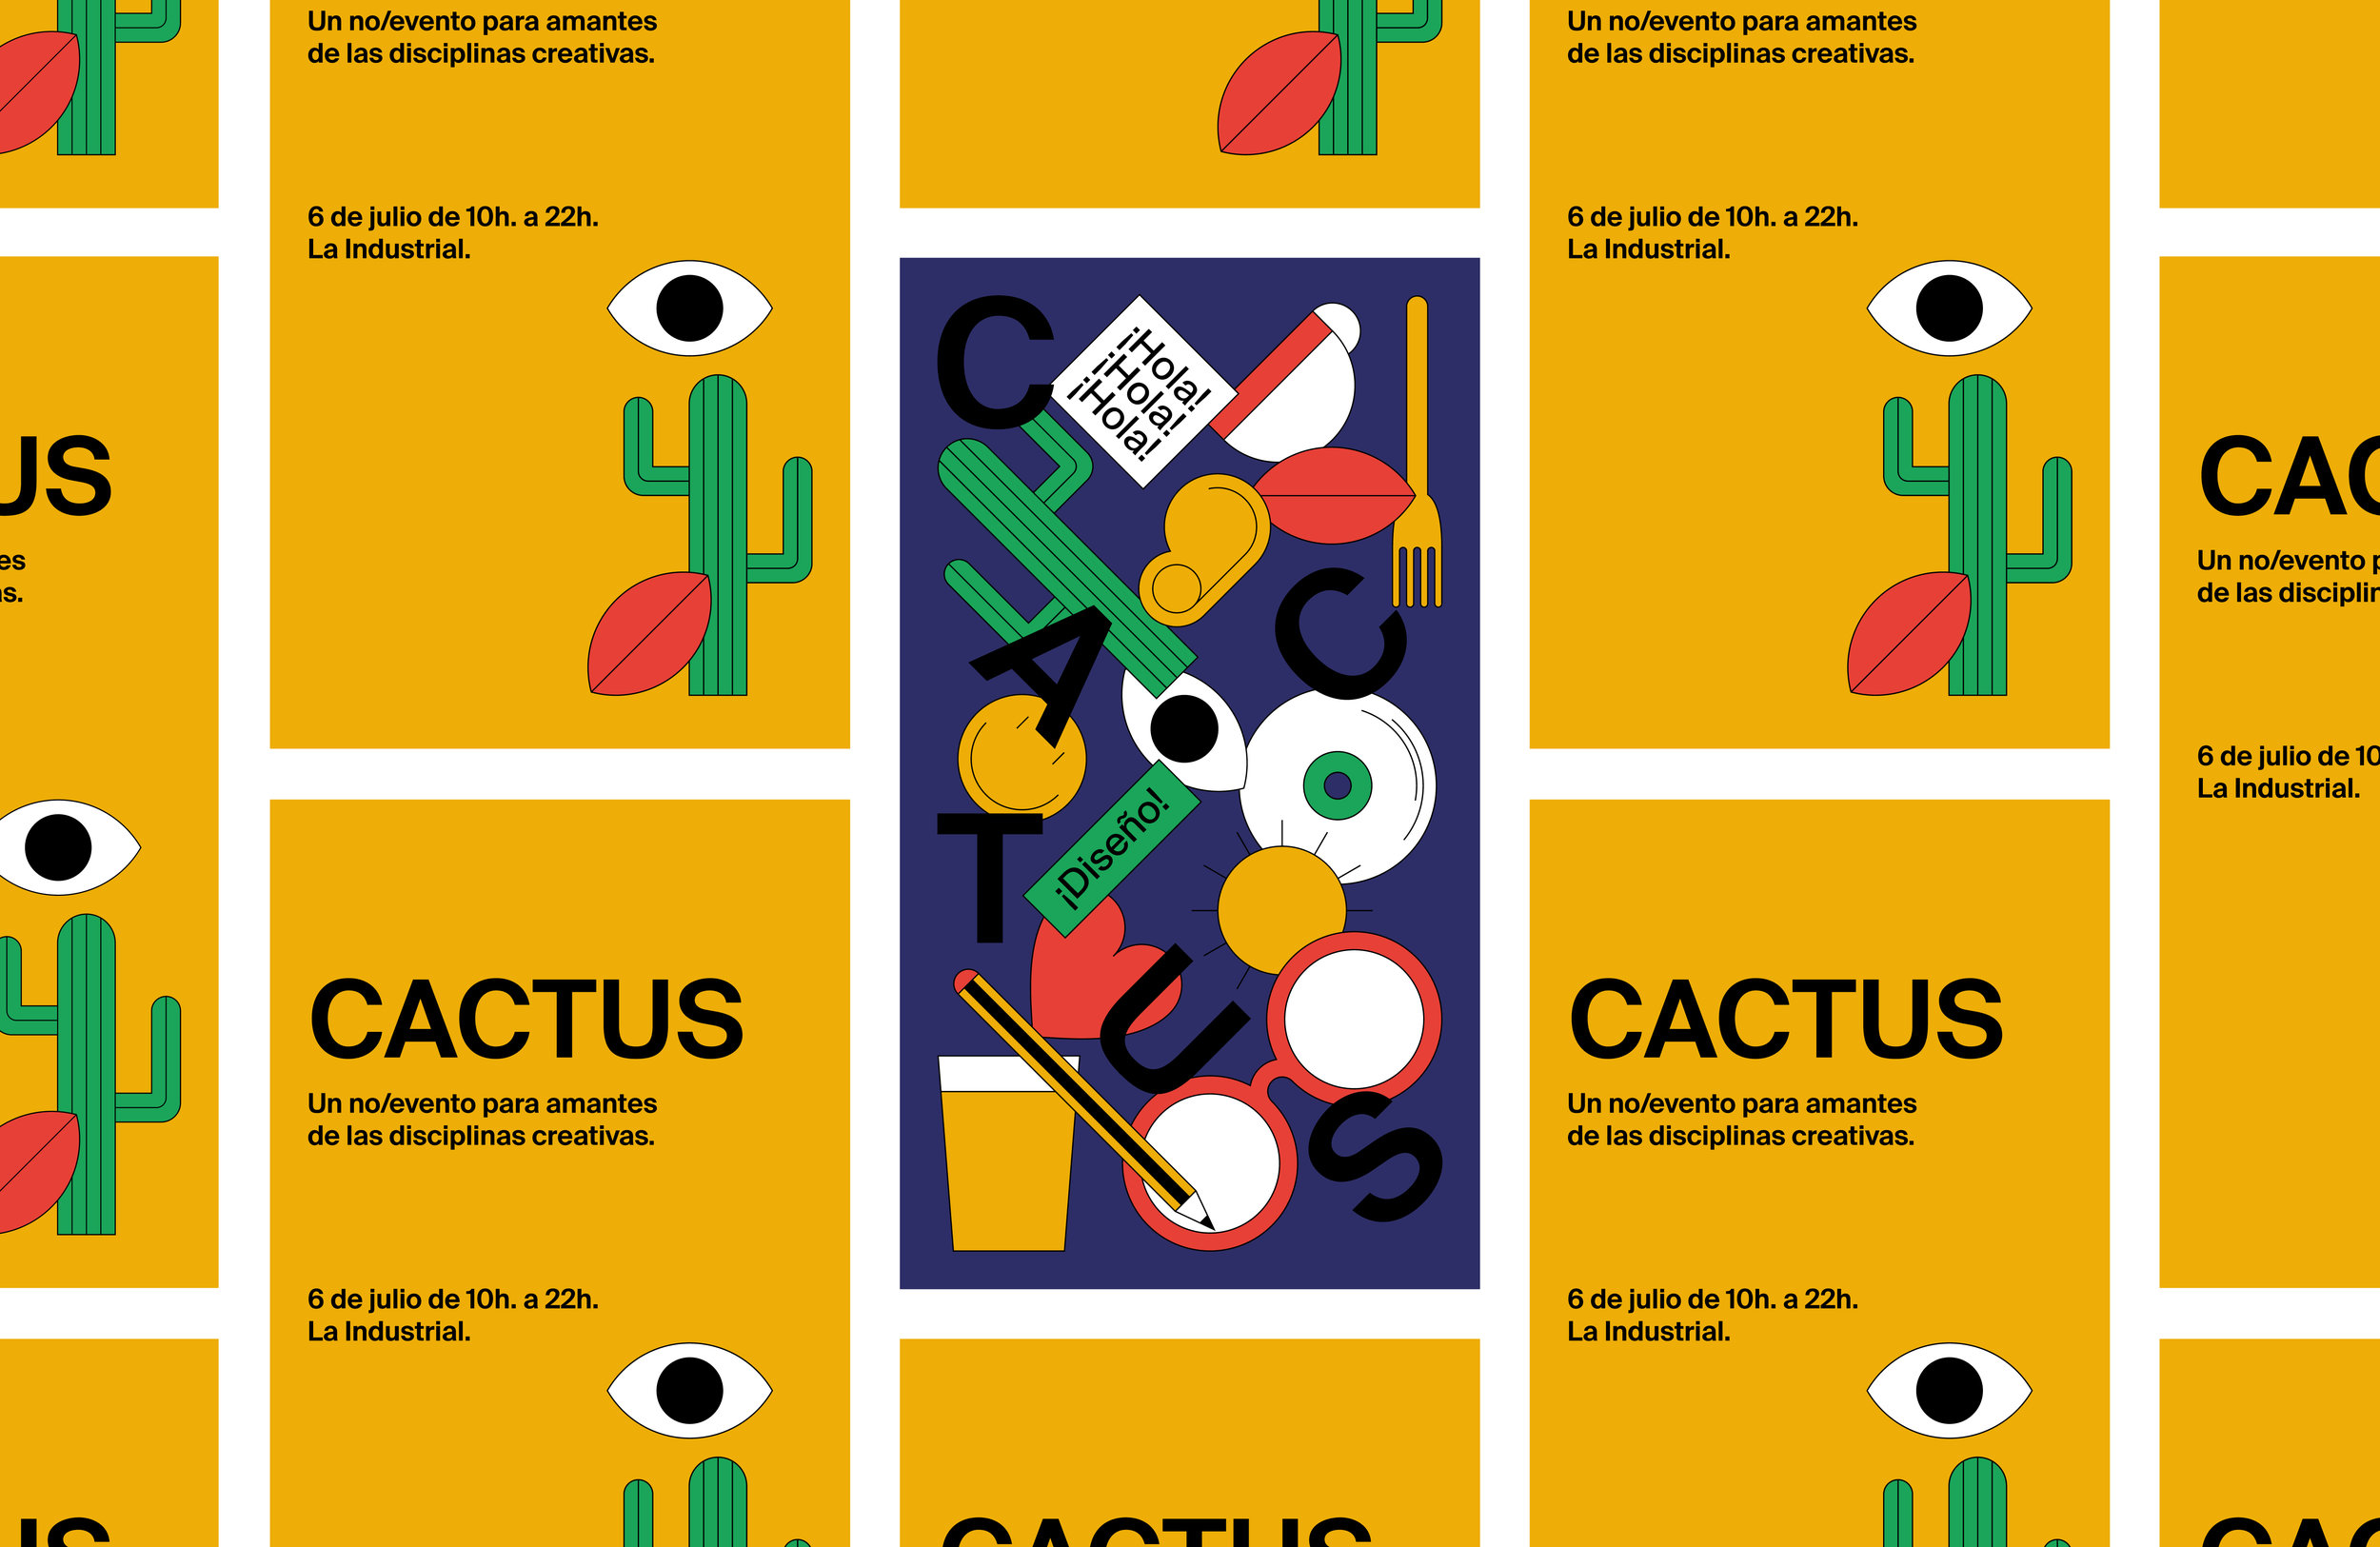 cactus_illustration_posters_design.jpg